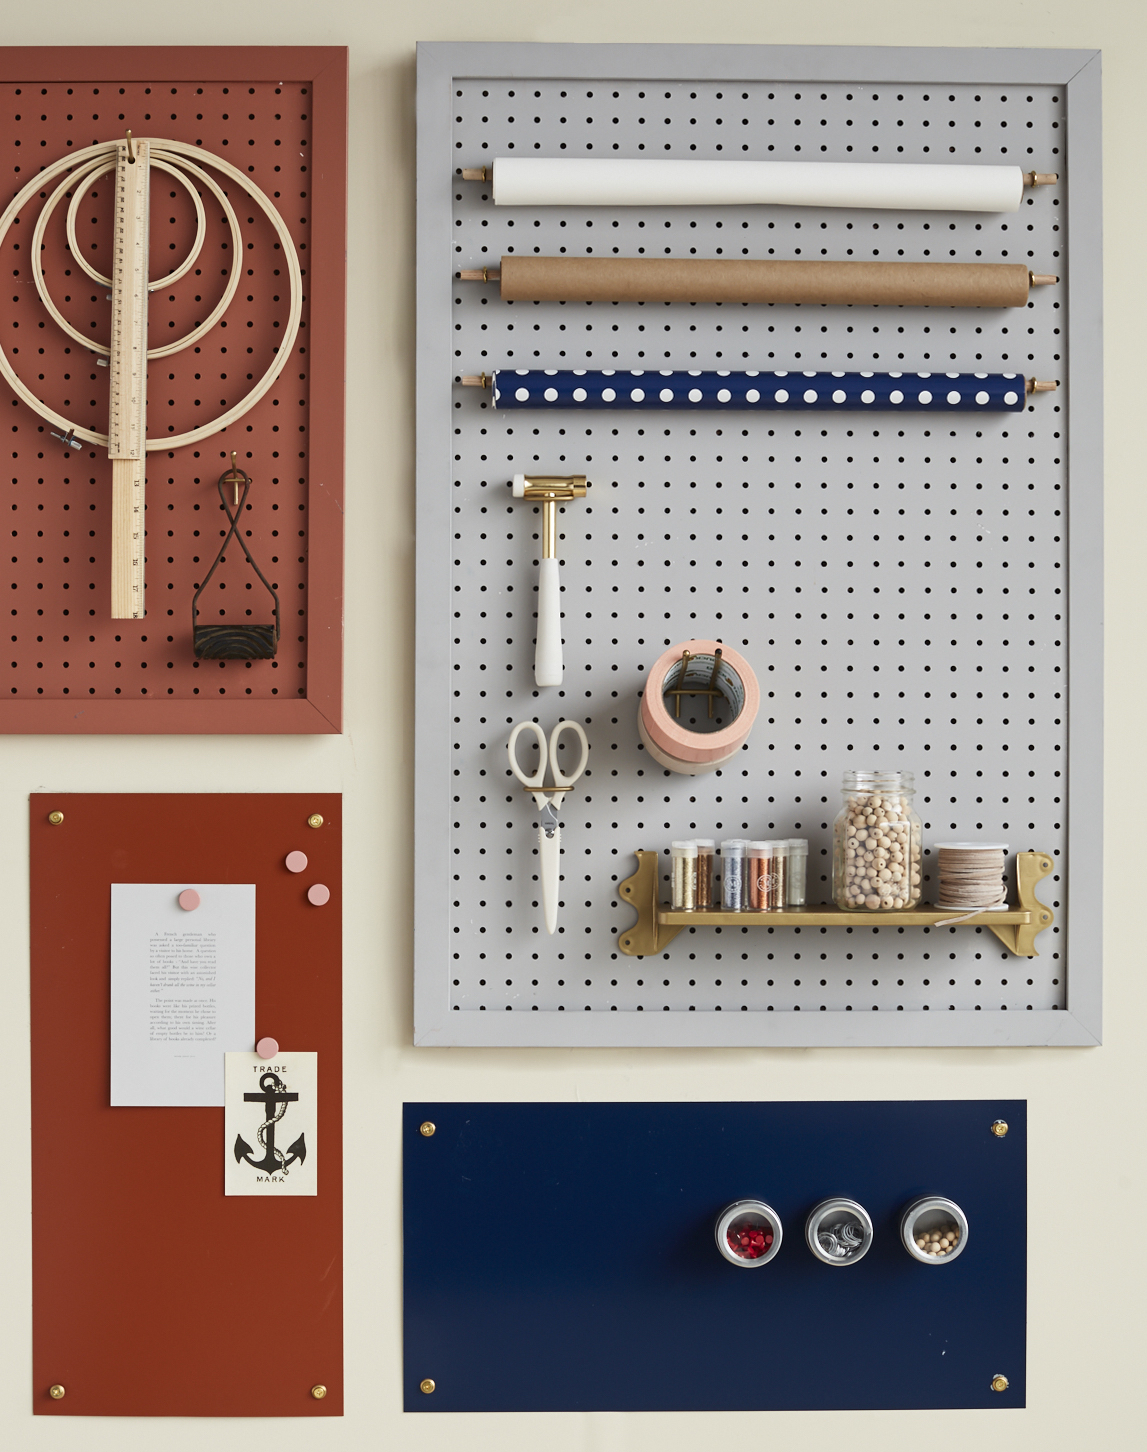 hardware on a peg board